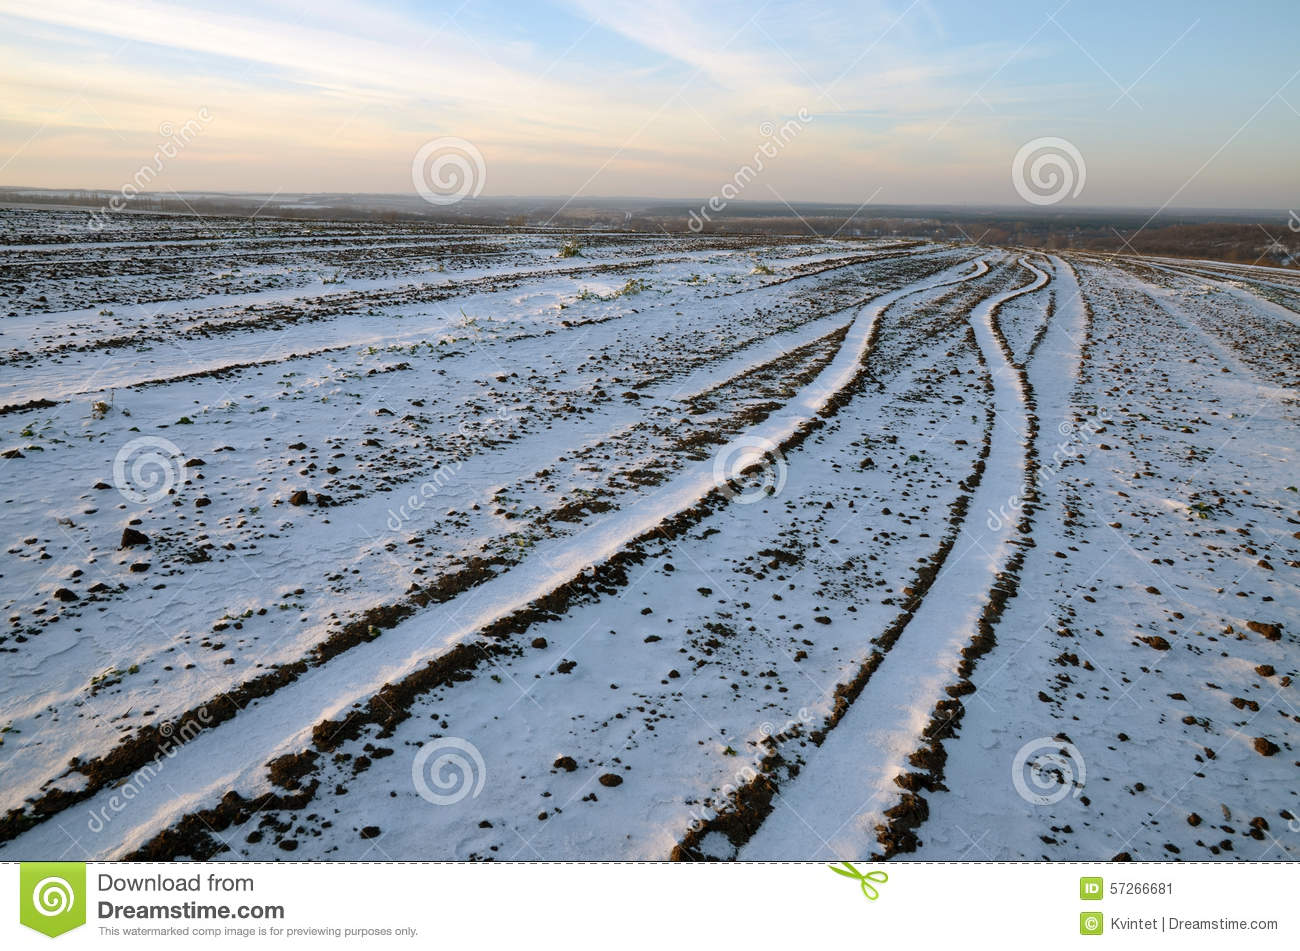 The trajectory of the way an a plowed field and covered with snow